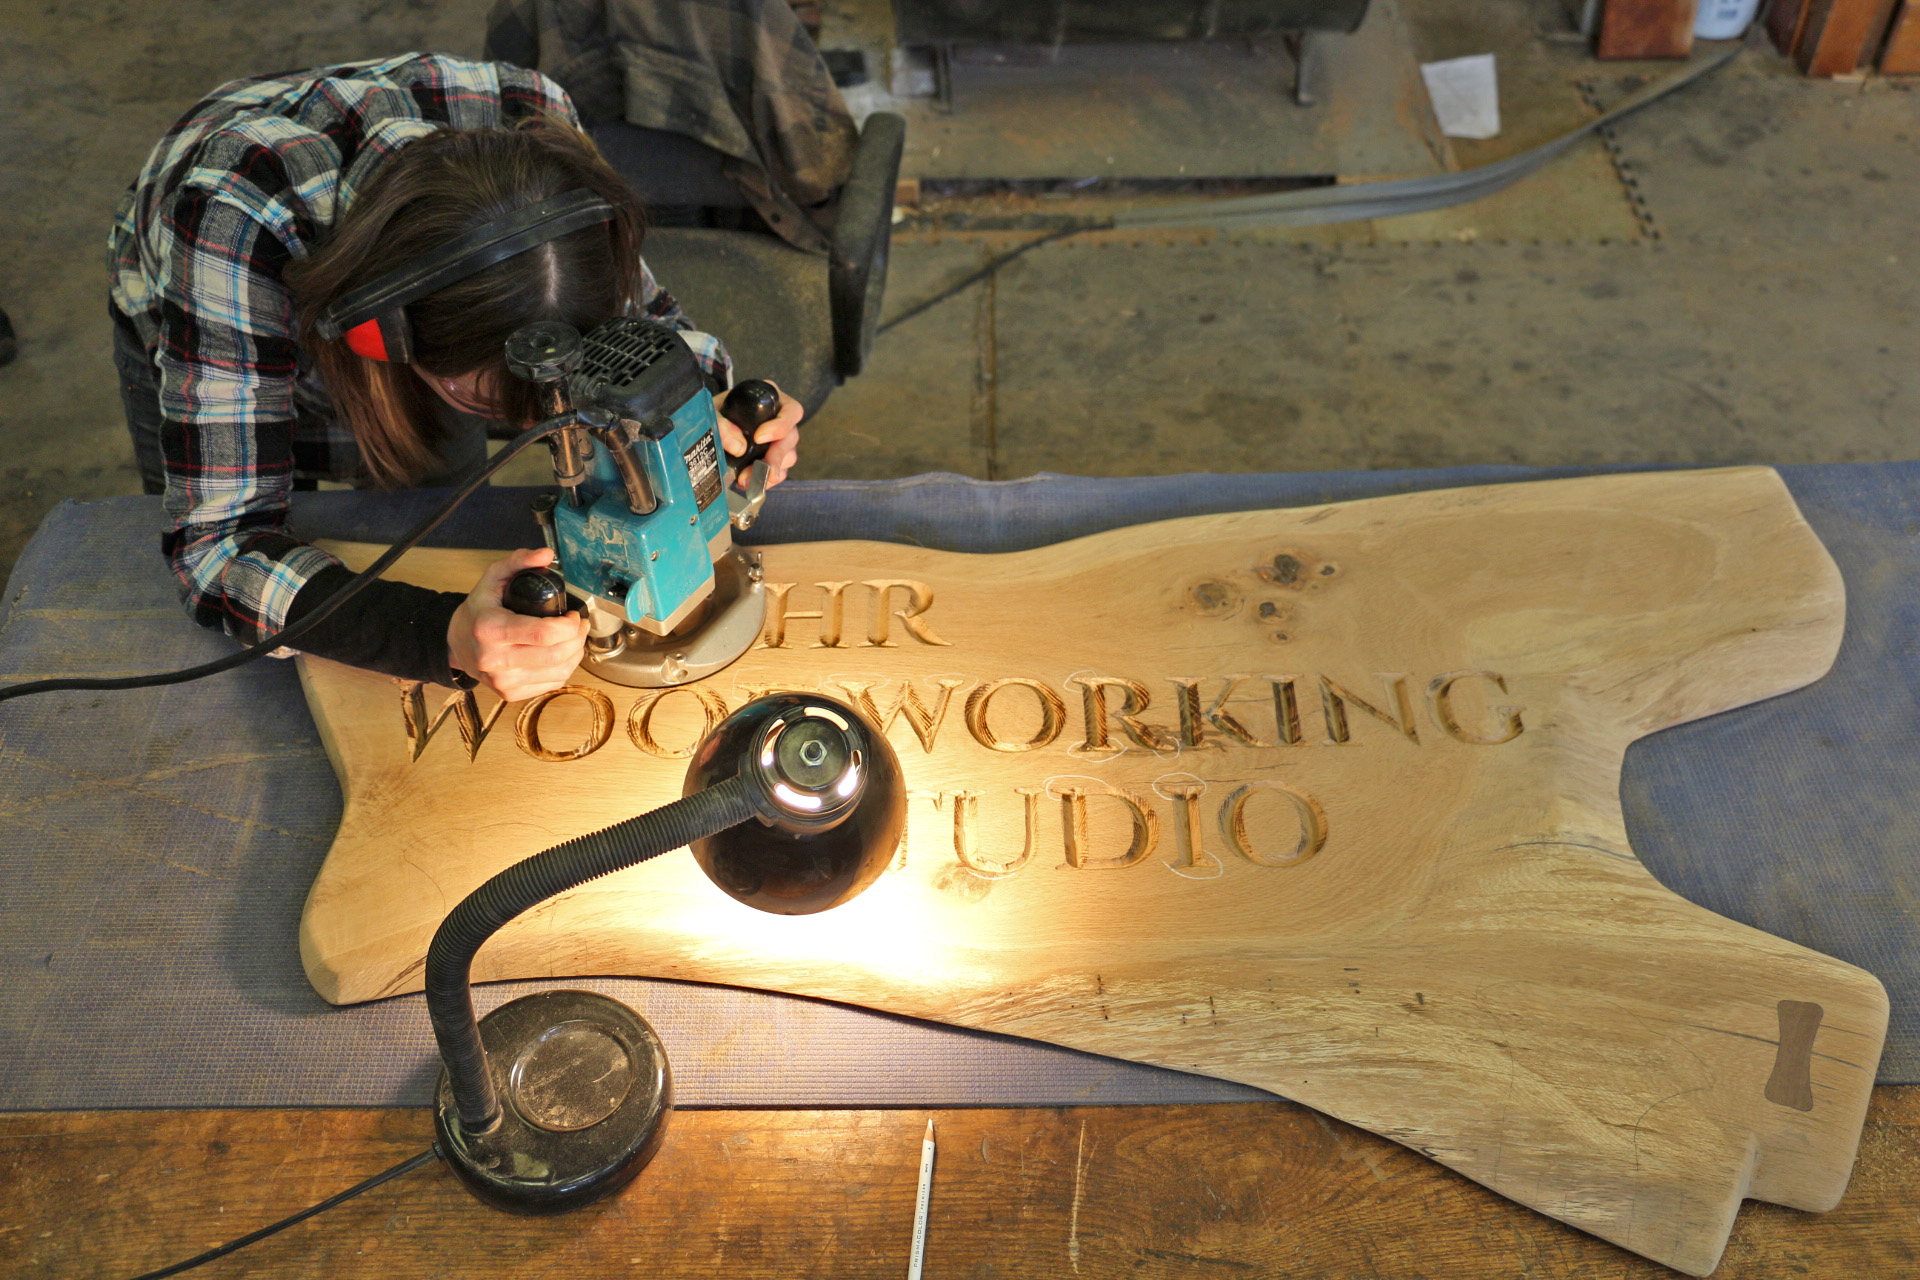 Routing Lohr Woodworking SIgn.jpg